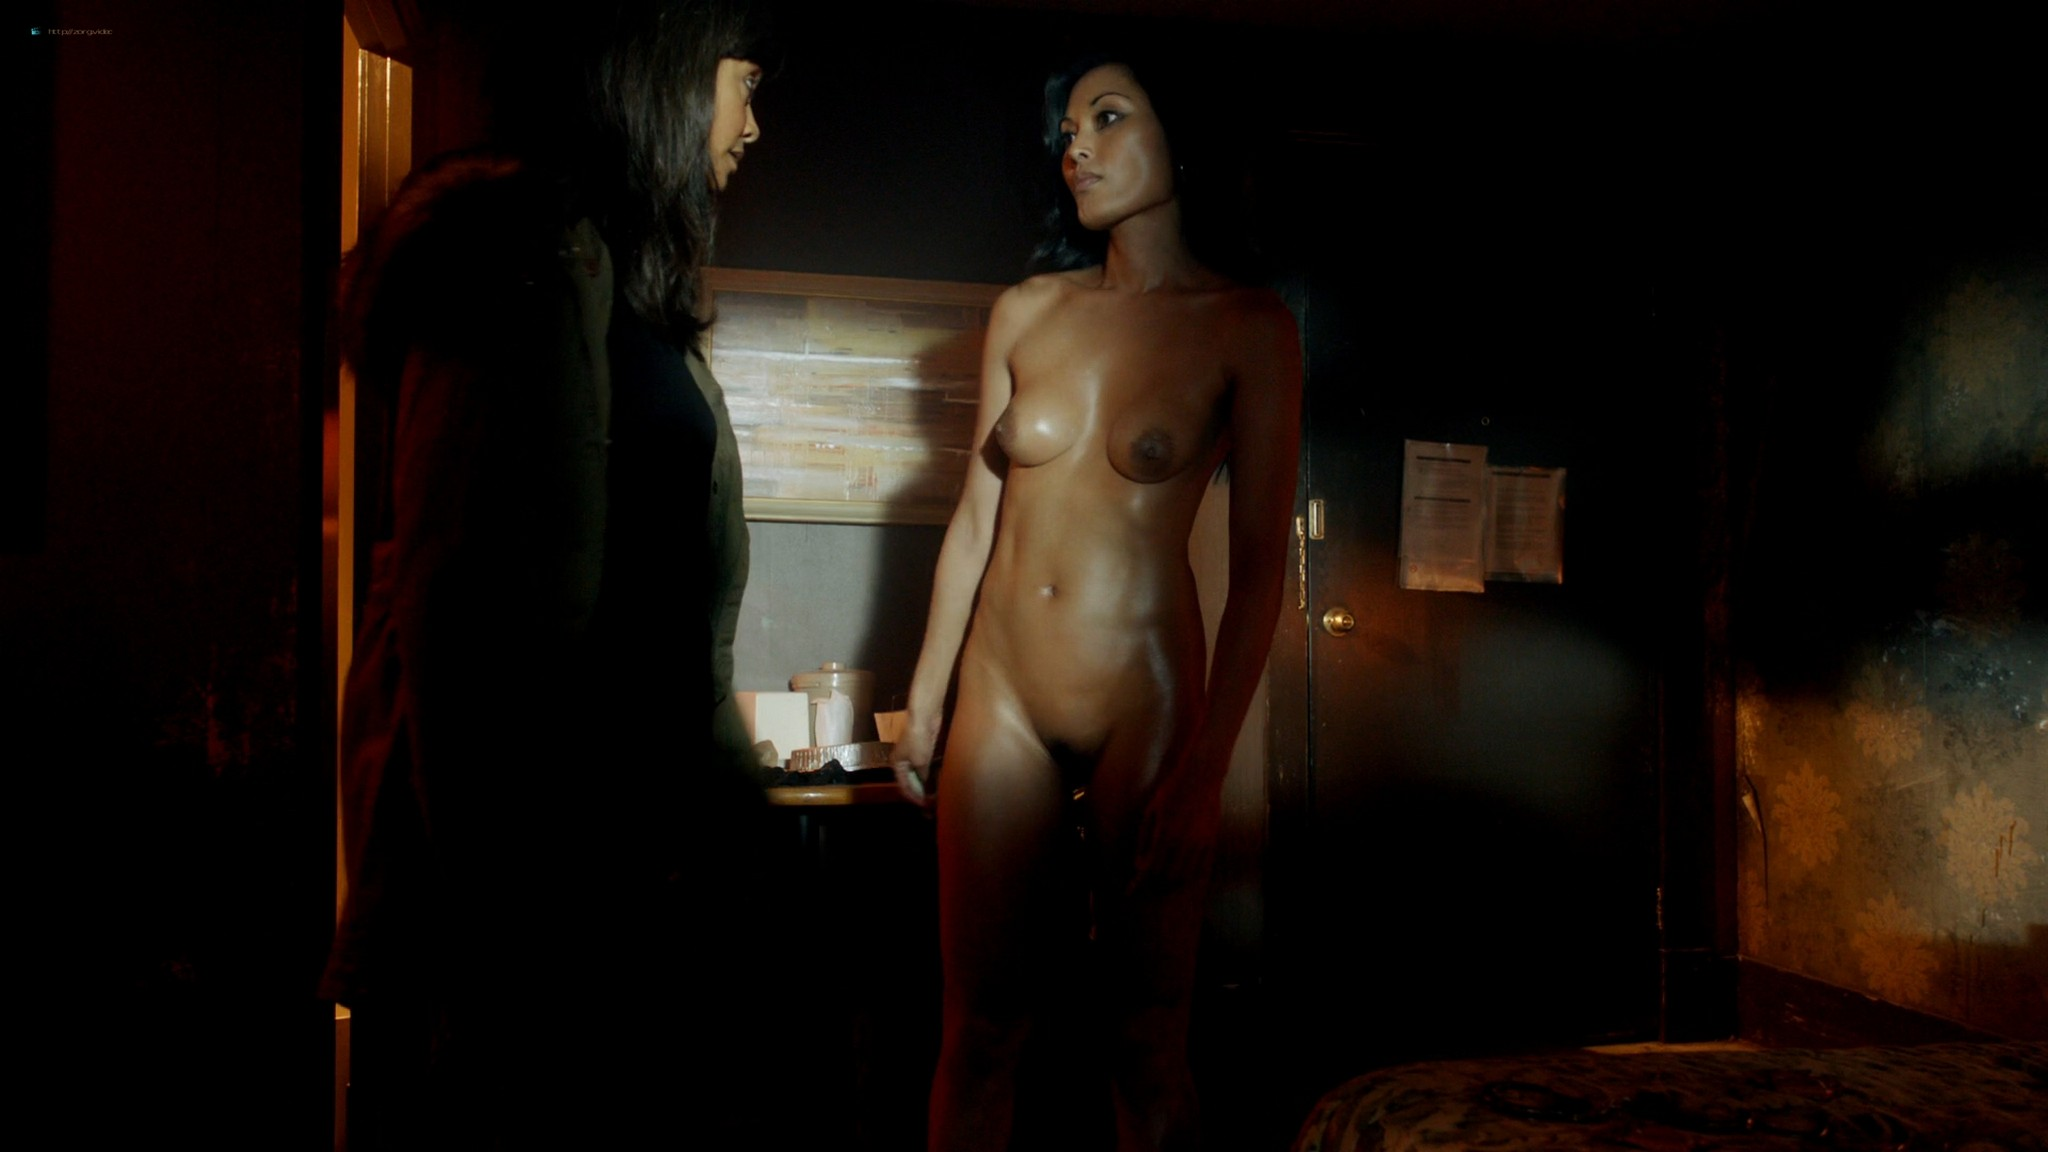 Kira Clavell nude full frontal Leah Gibson nude sex - Rogue (2013) s1e3 HD 1080p (2)